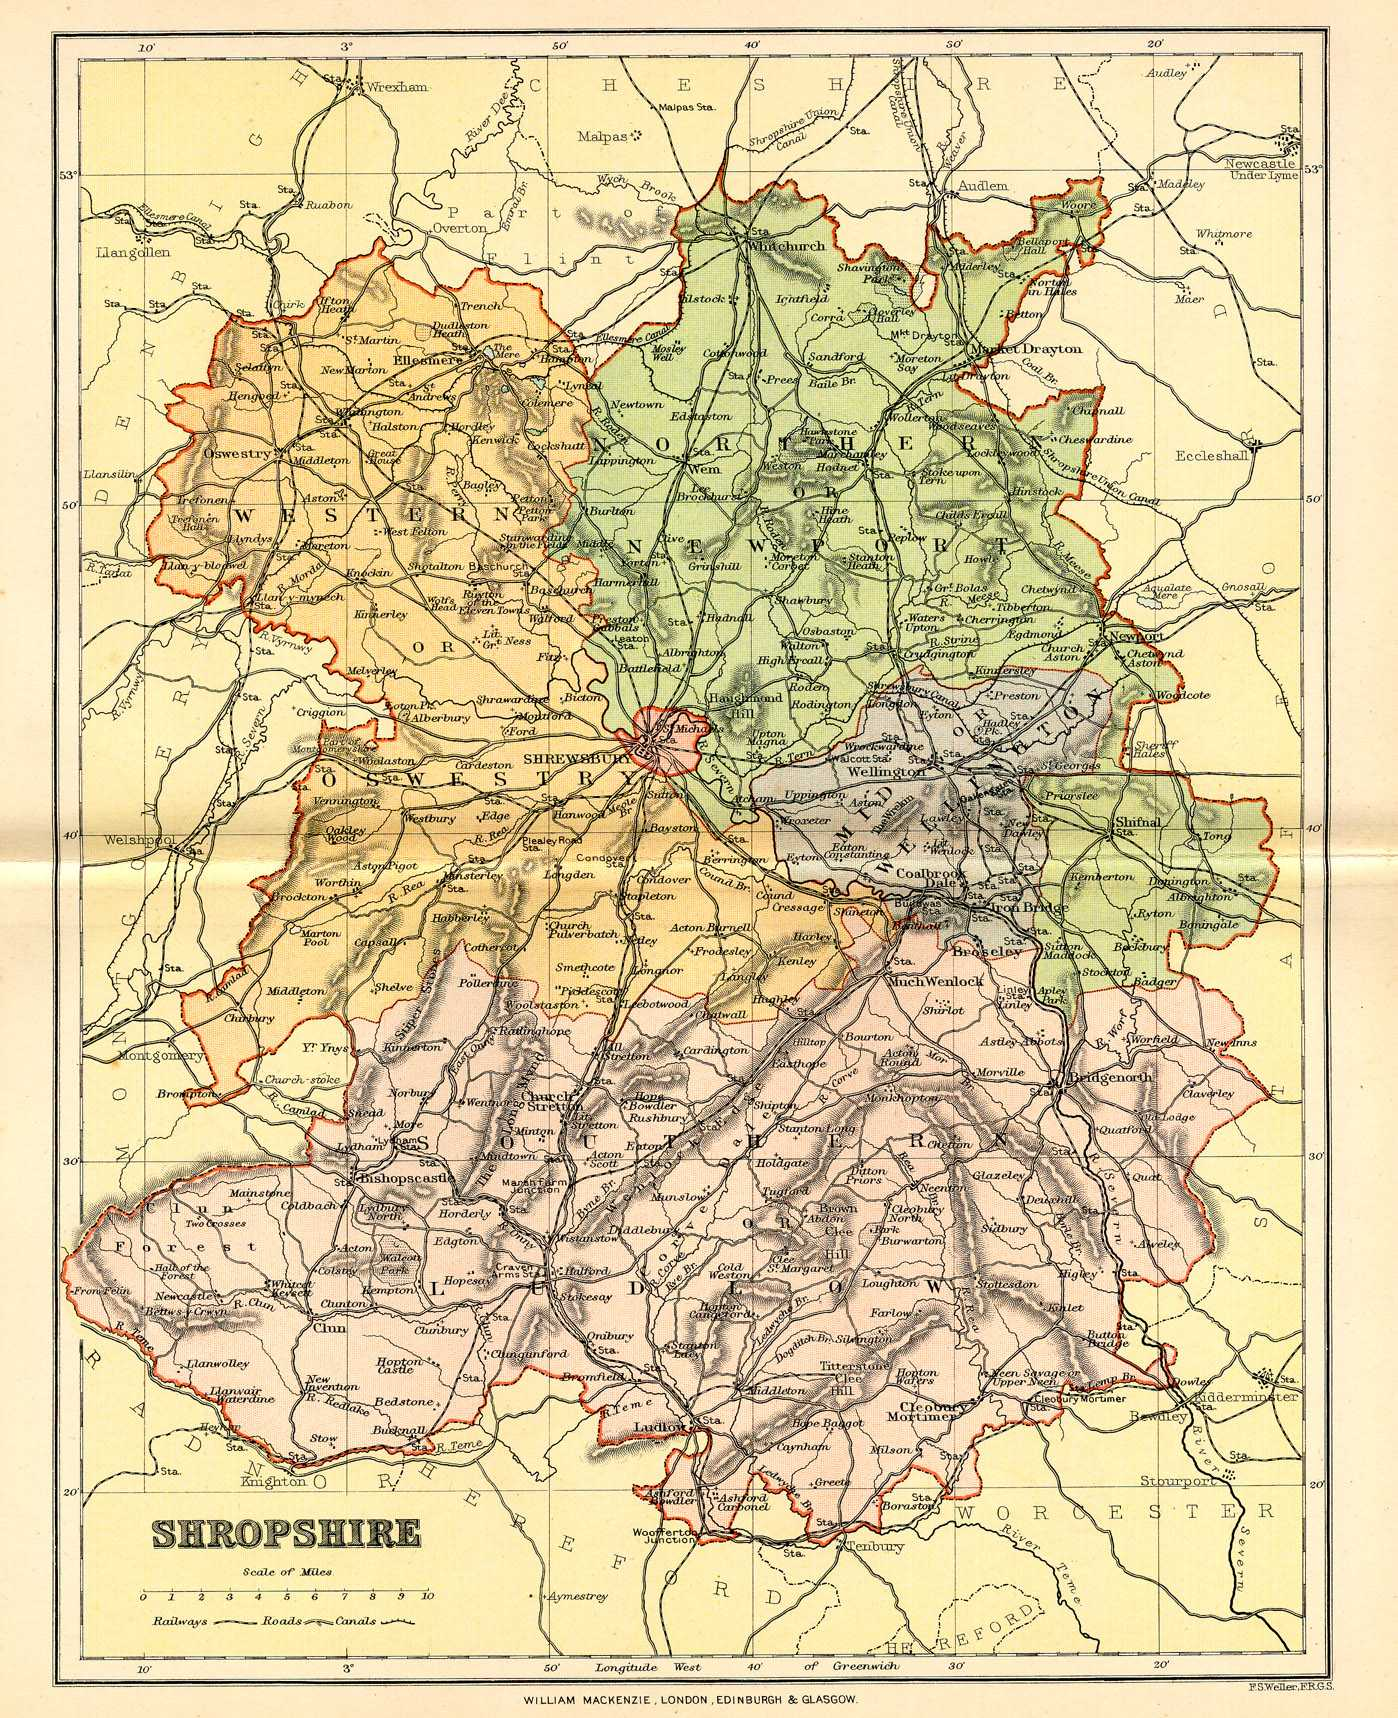 Maps Mons Obscurus FANDOM Powered By Wikia - Historic maps england